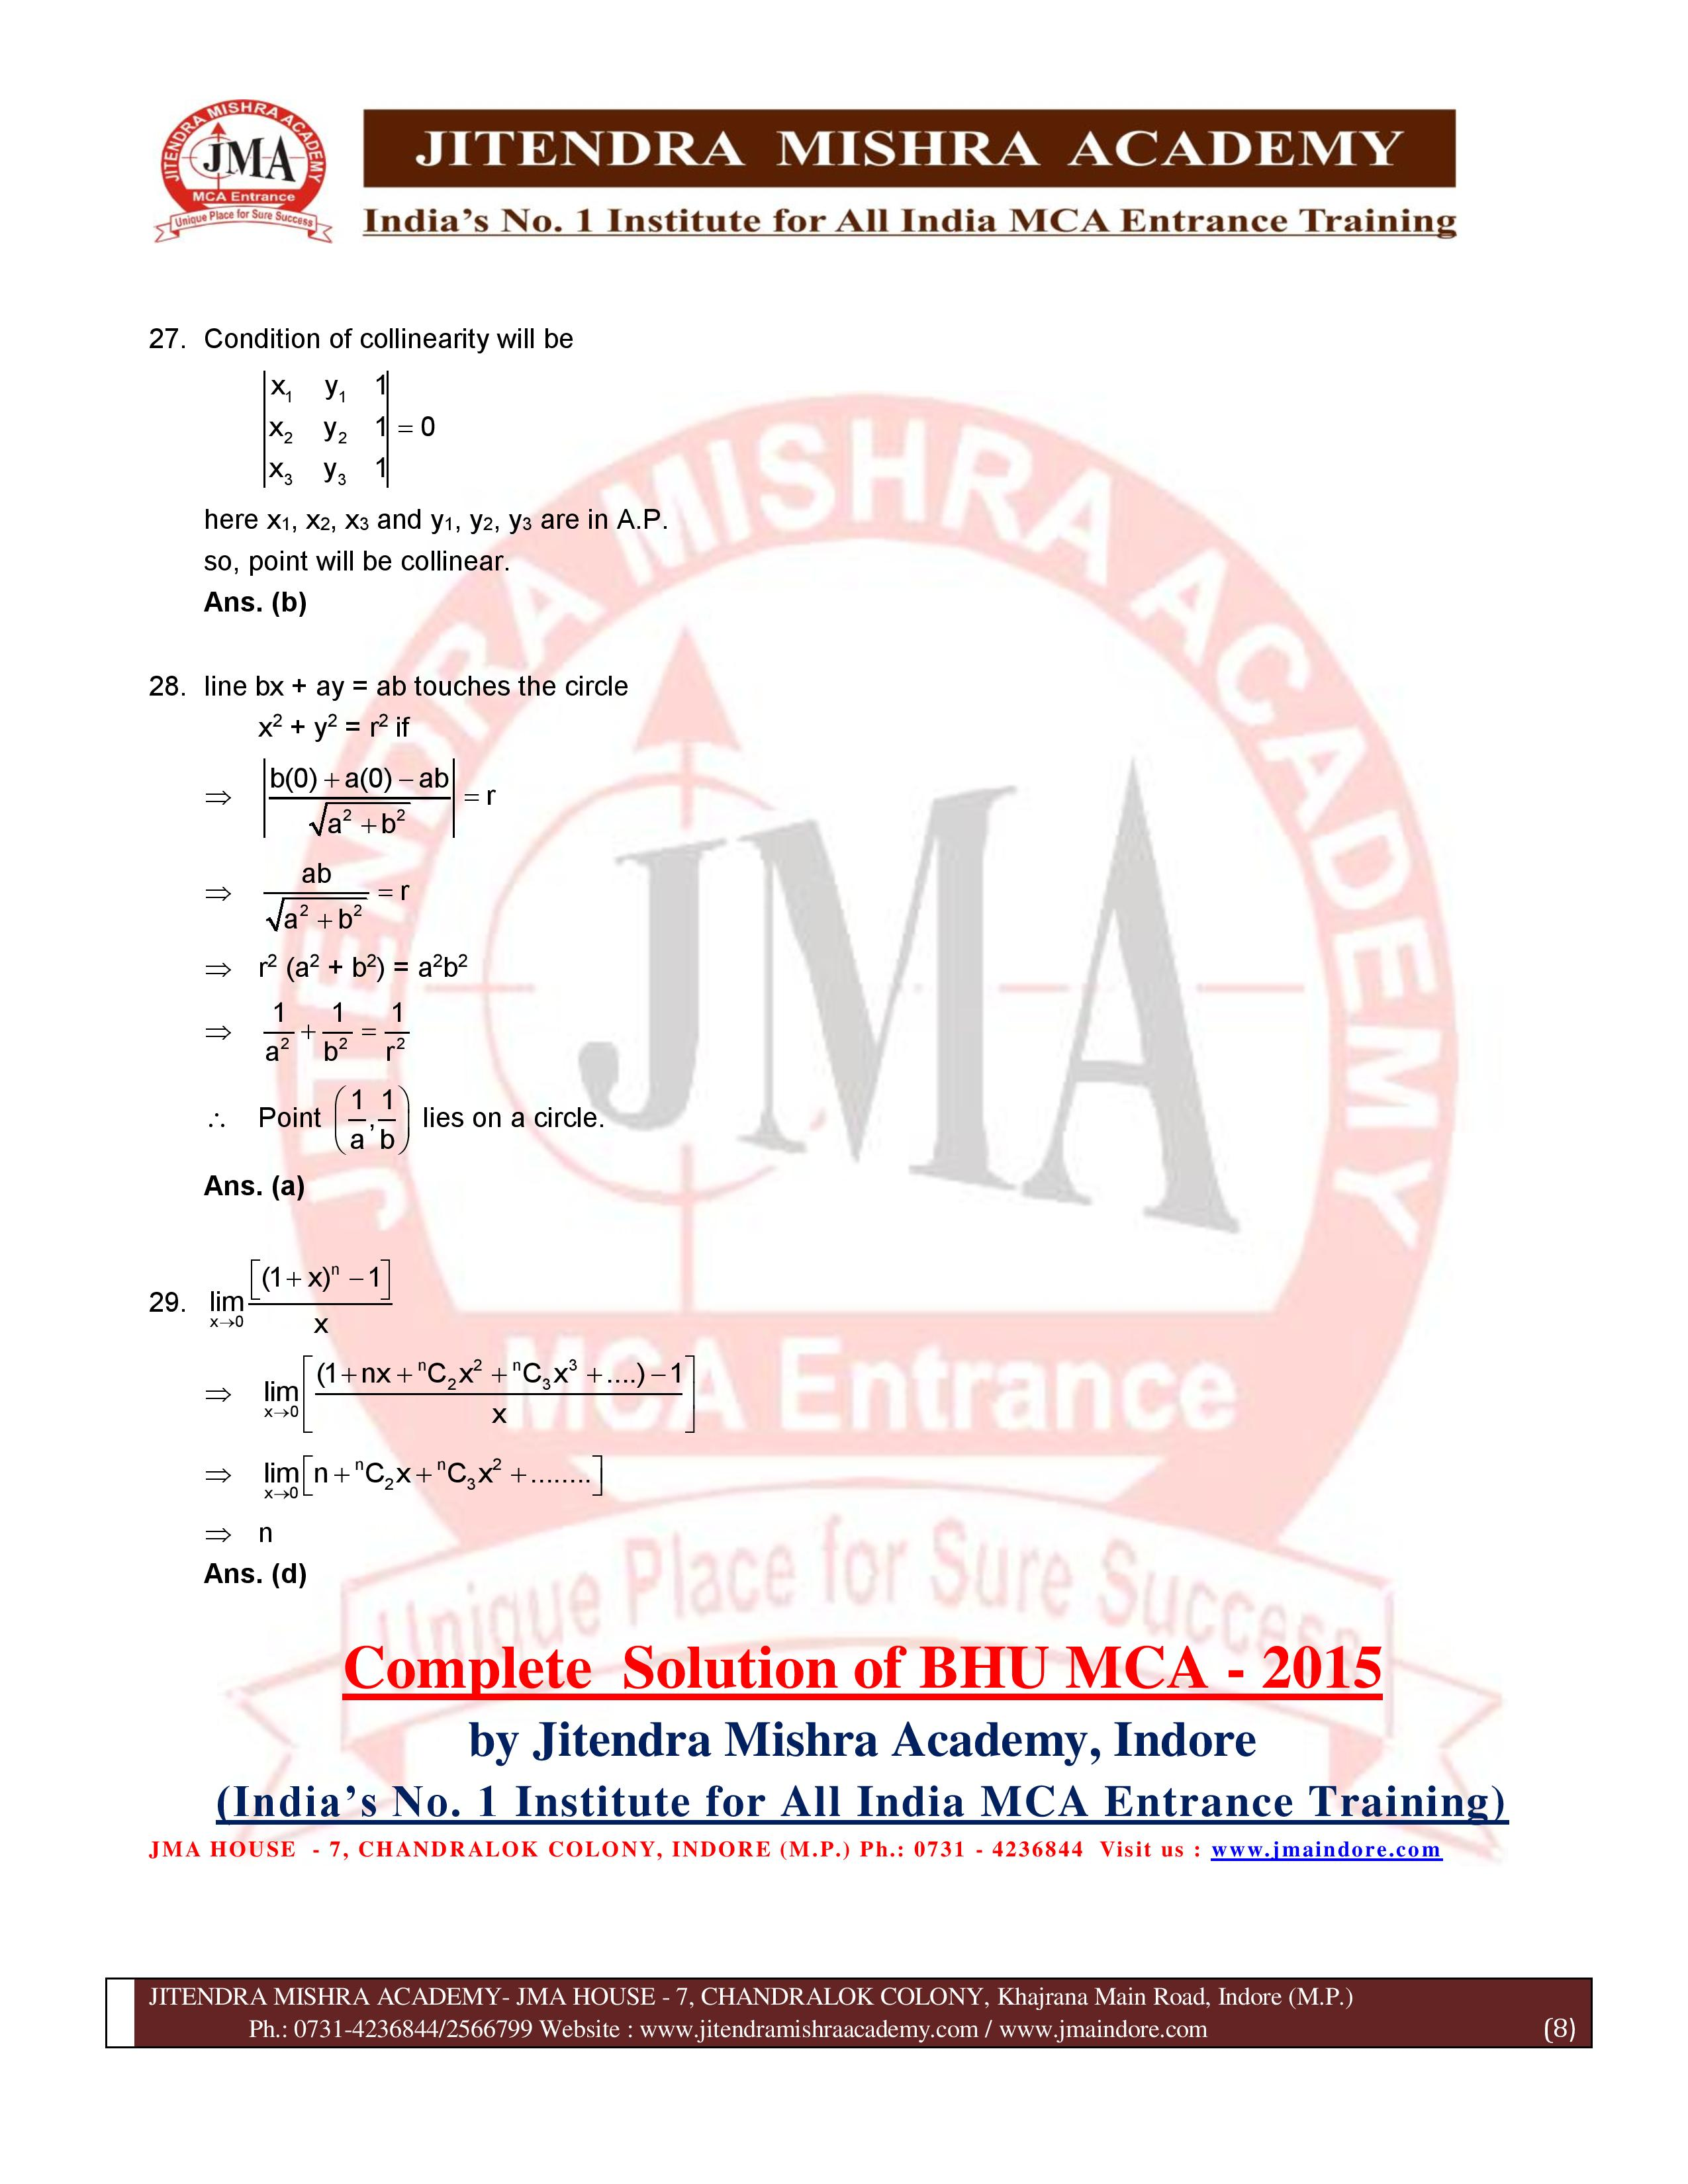 BHU 2015 SOLUTION (SET - 1) (29.06.16)-page-008